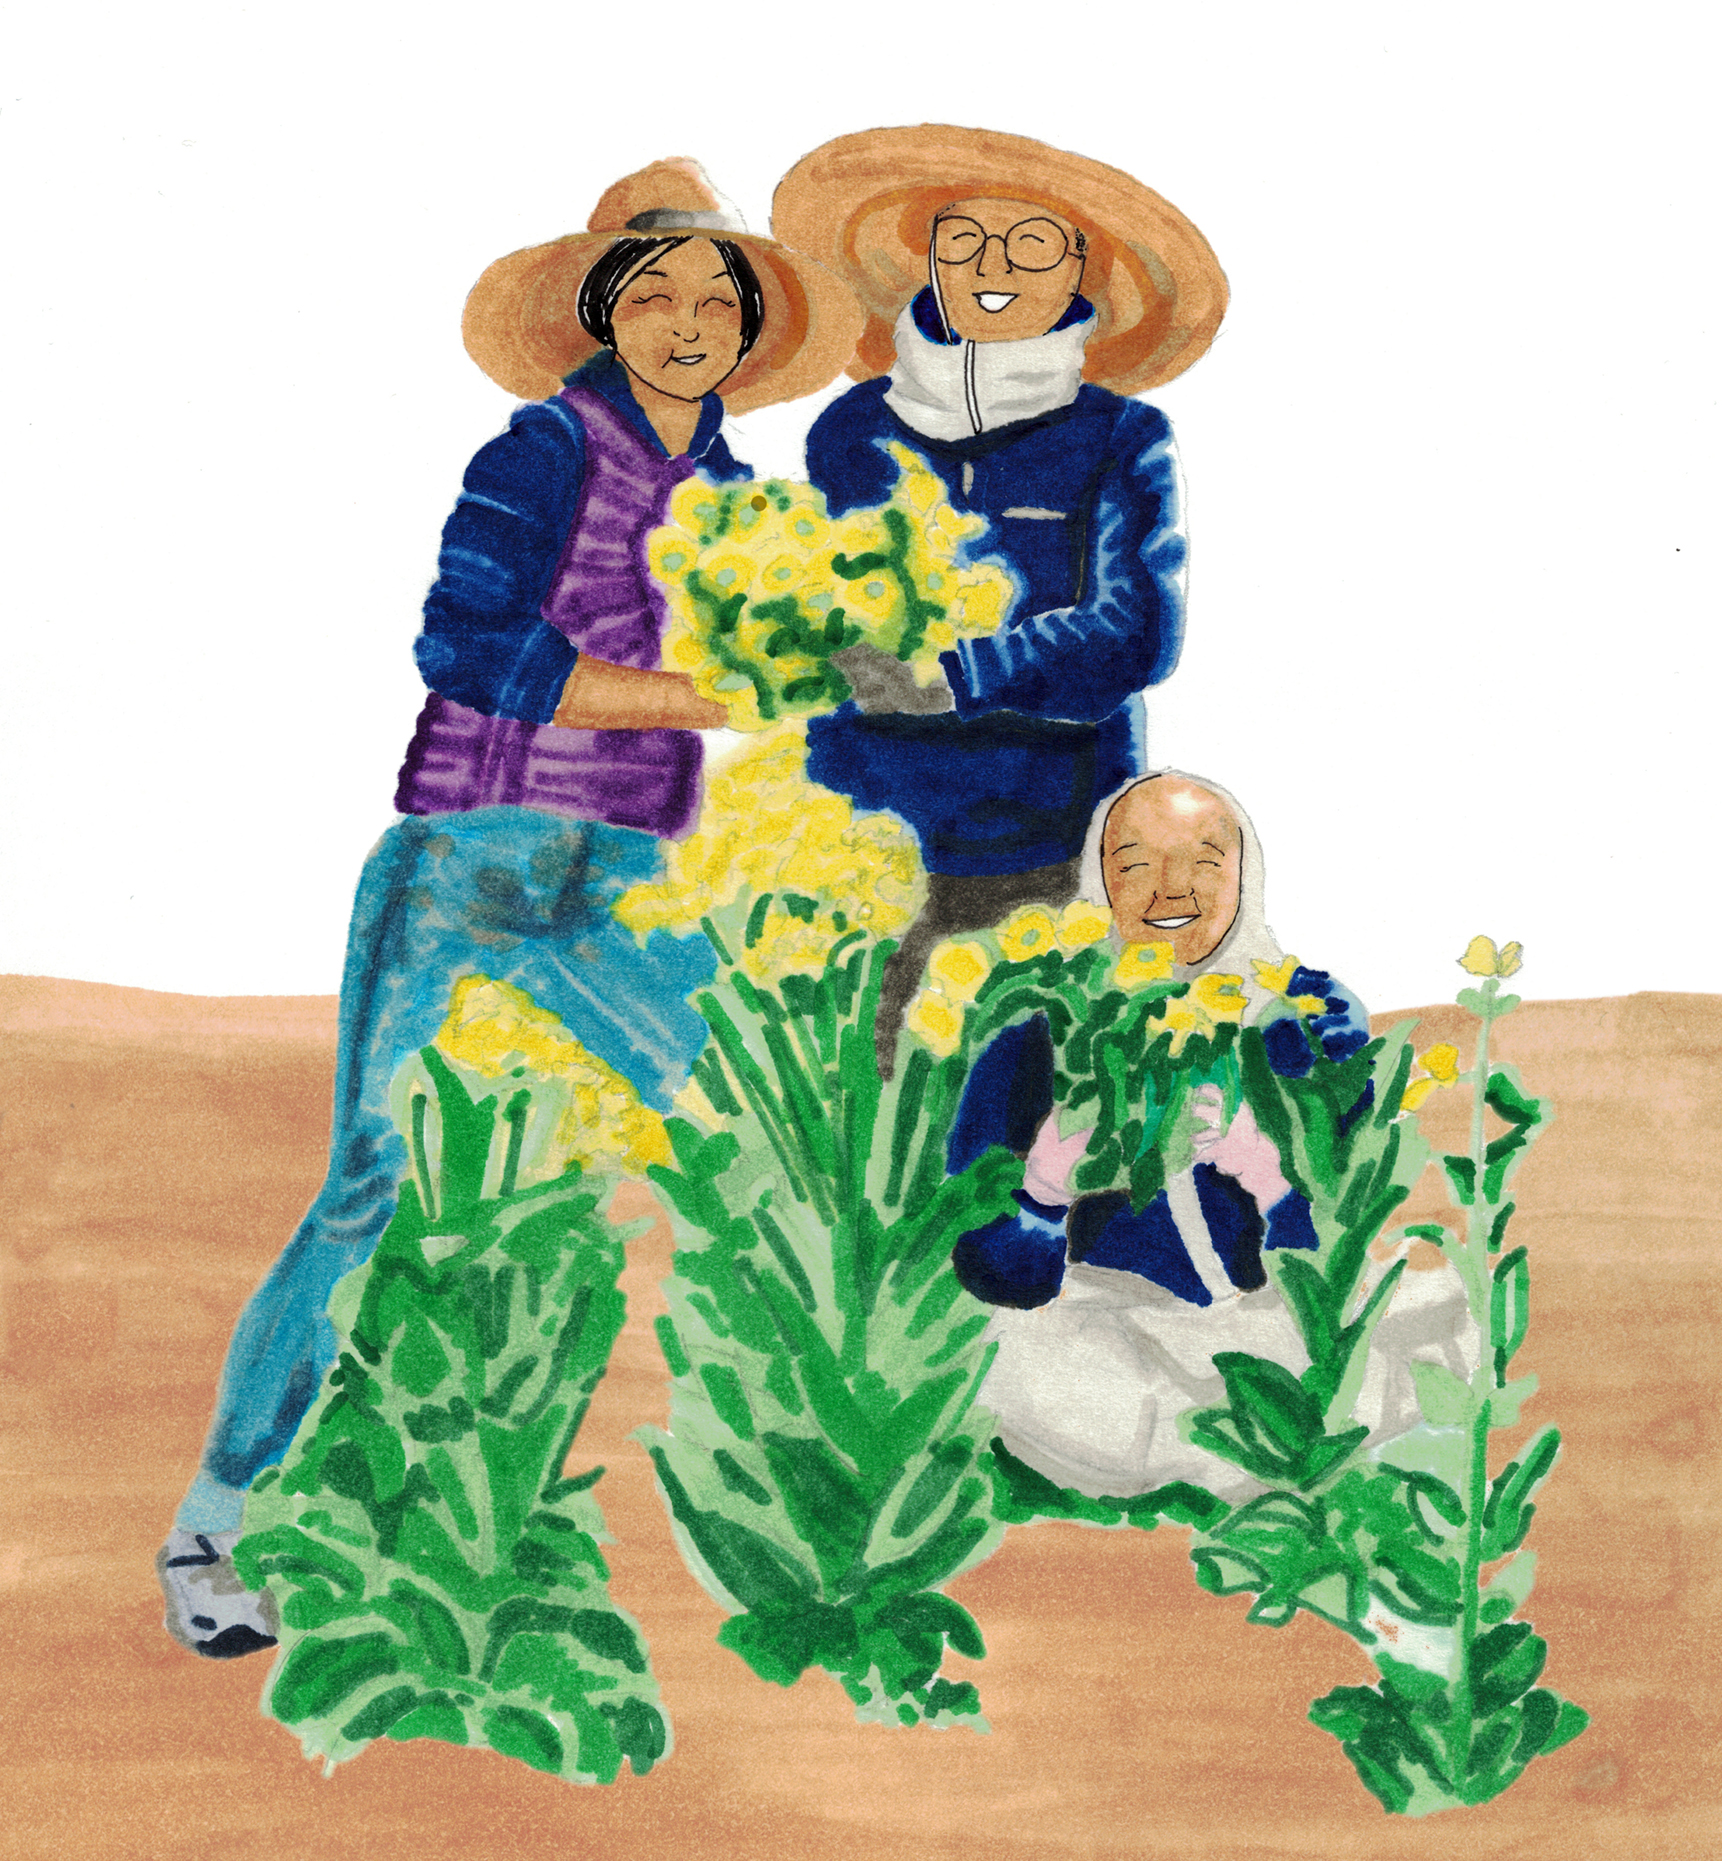 Shin (left) harvests cabbage flowers with  Jeong Kwan (seated) and   Myo Jin (middle) at the Chunjinam hermitage in South Korea.